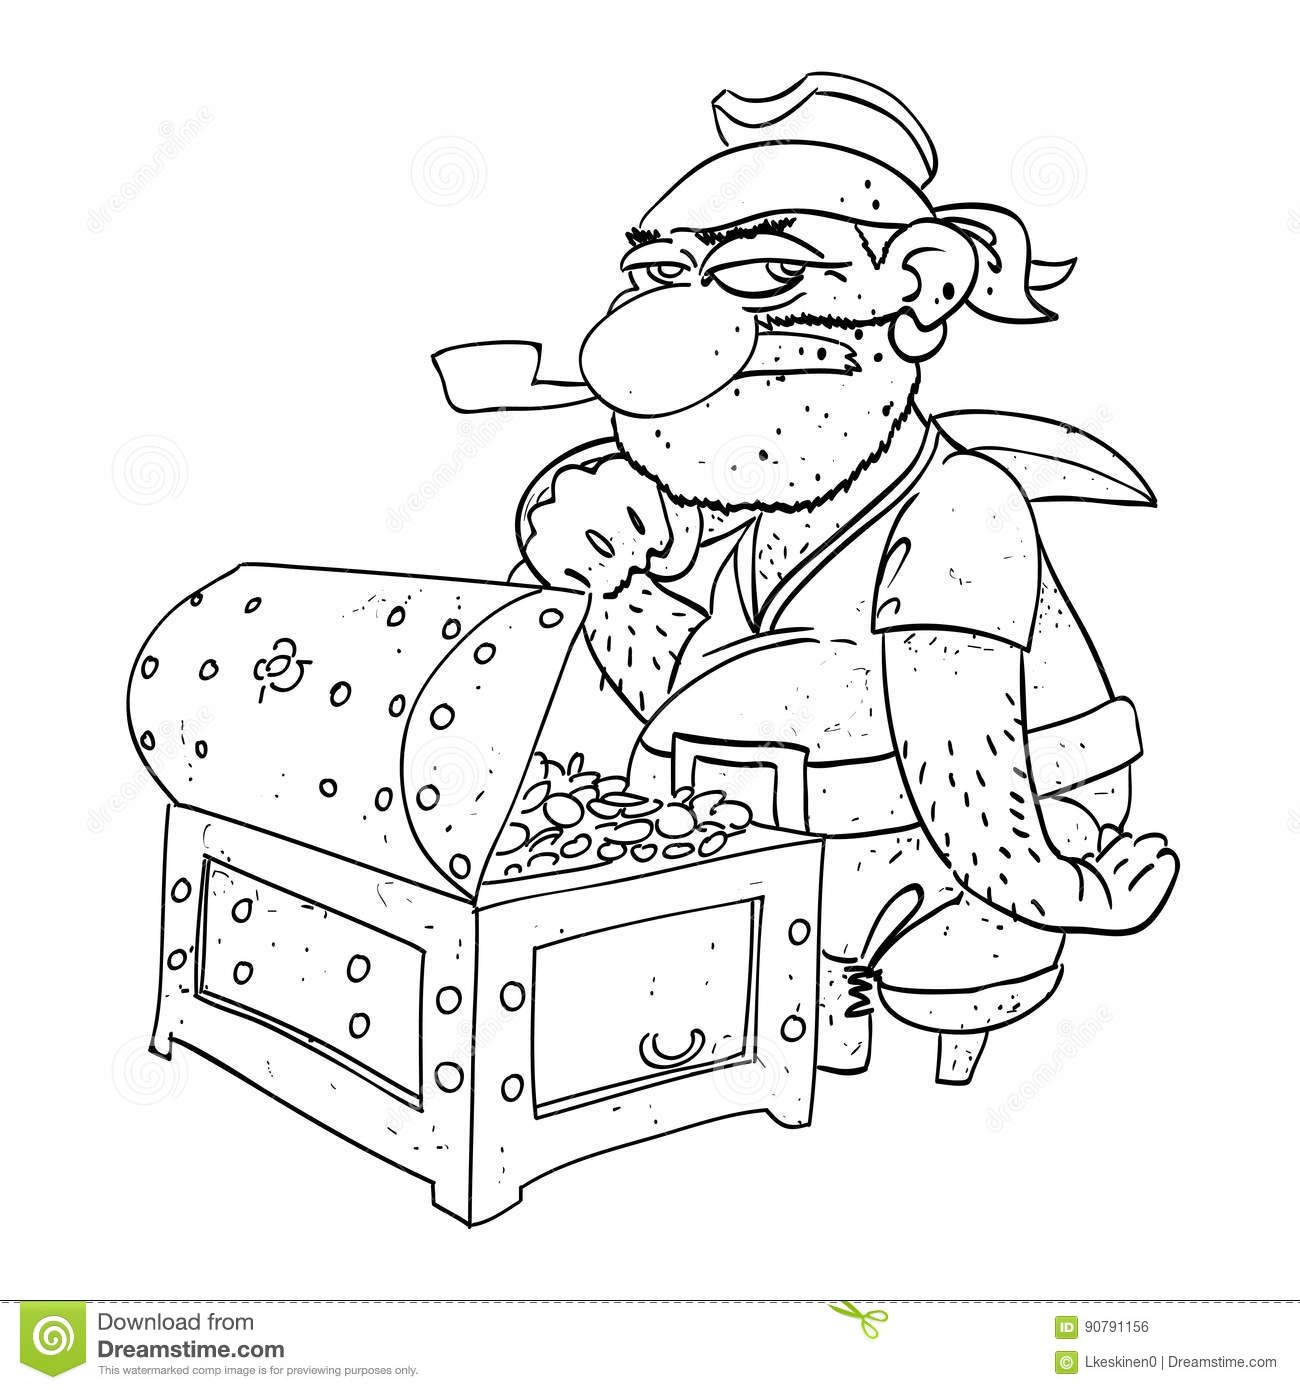 Cartoon Image Of Pirate Captain With Treasure Chest Stock